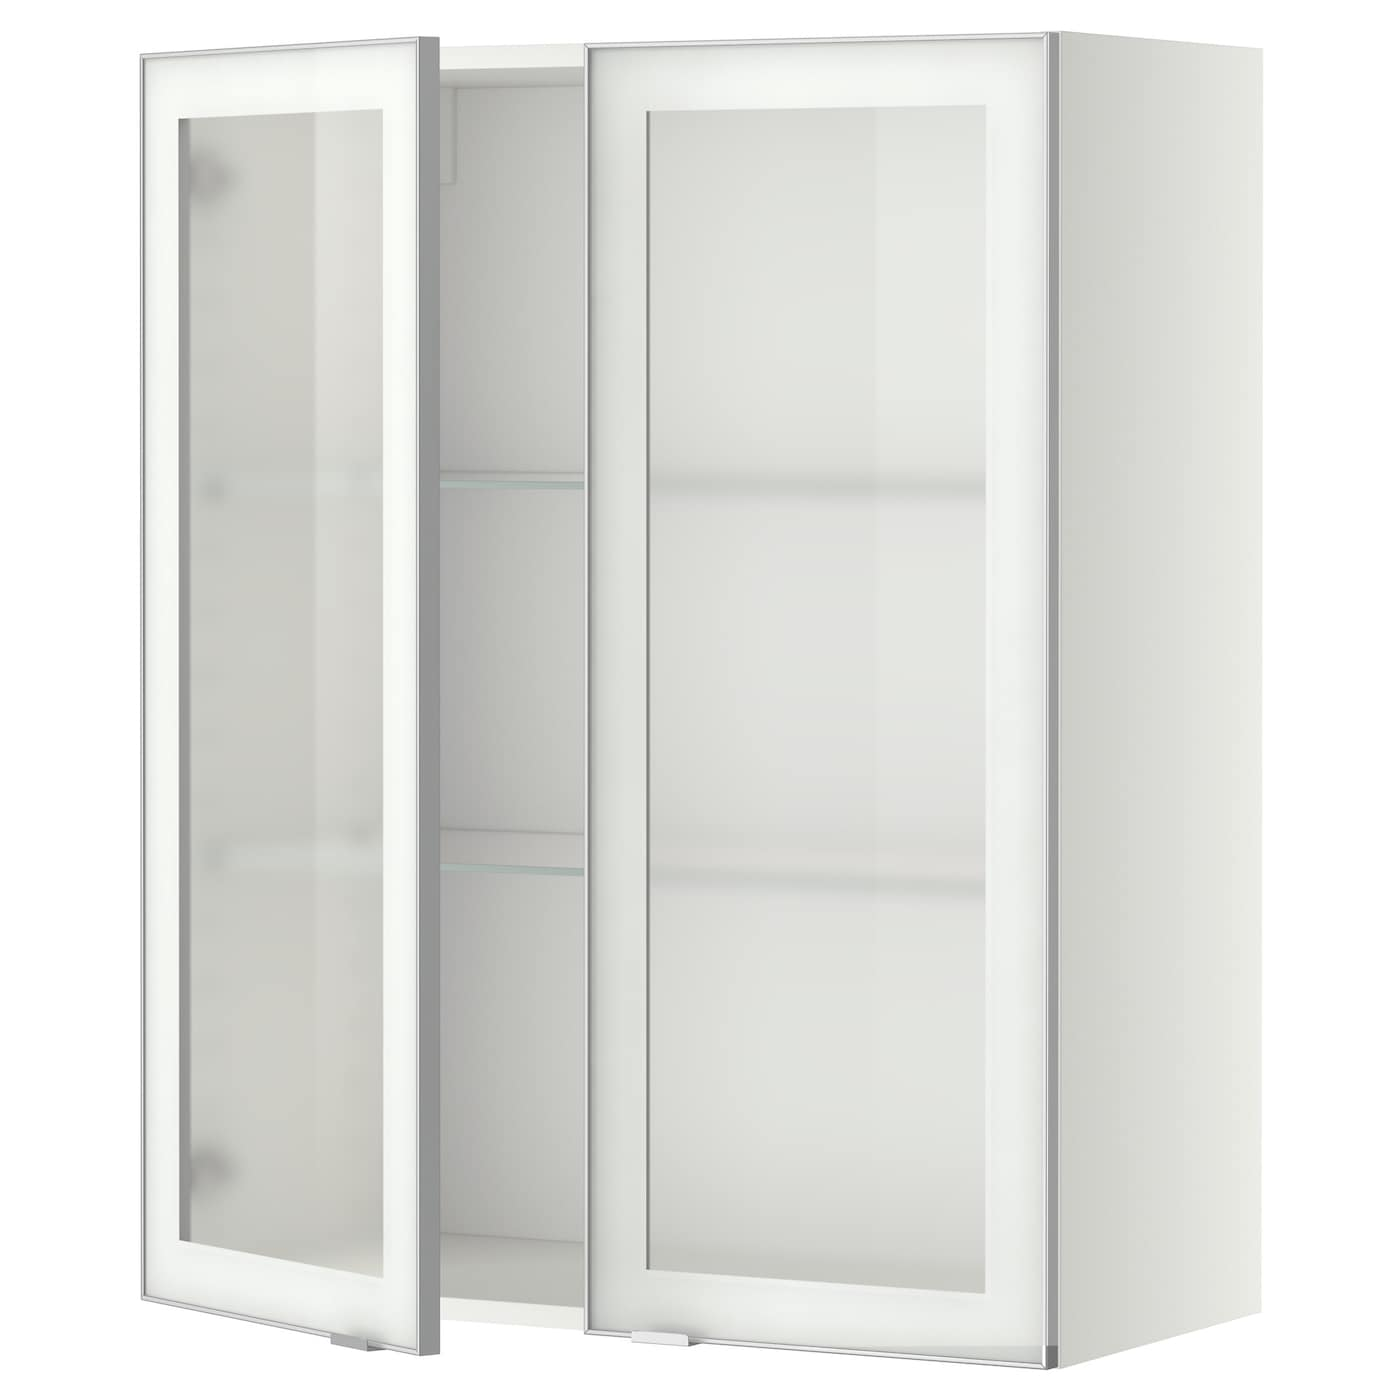 Metod wall cabinet w shelves 2 glass drs white jutis for Kitchen cabinets ikea